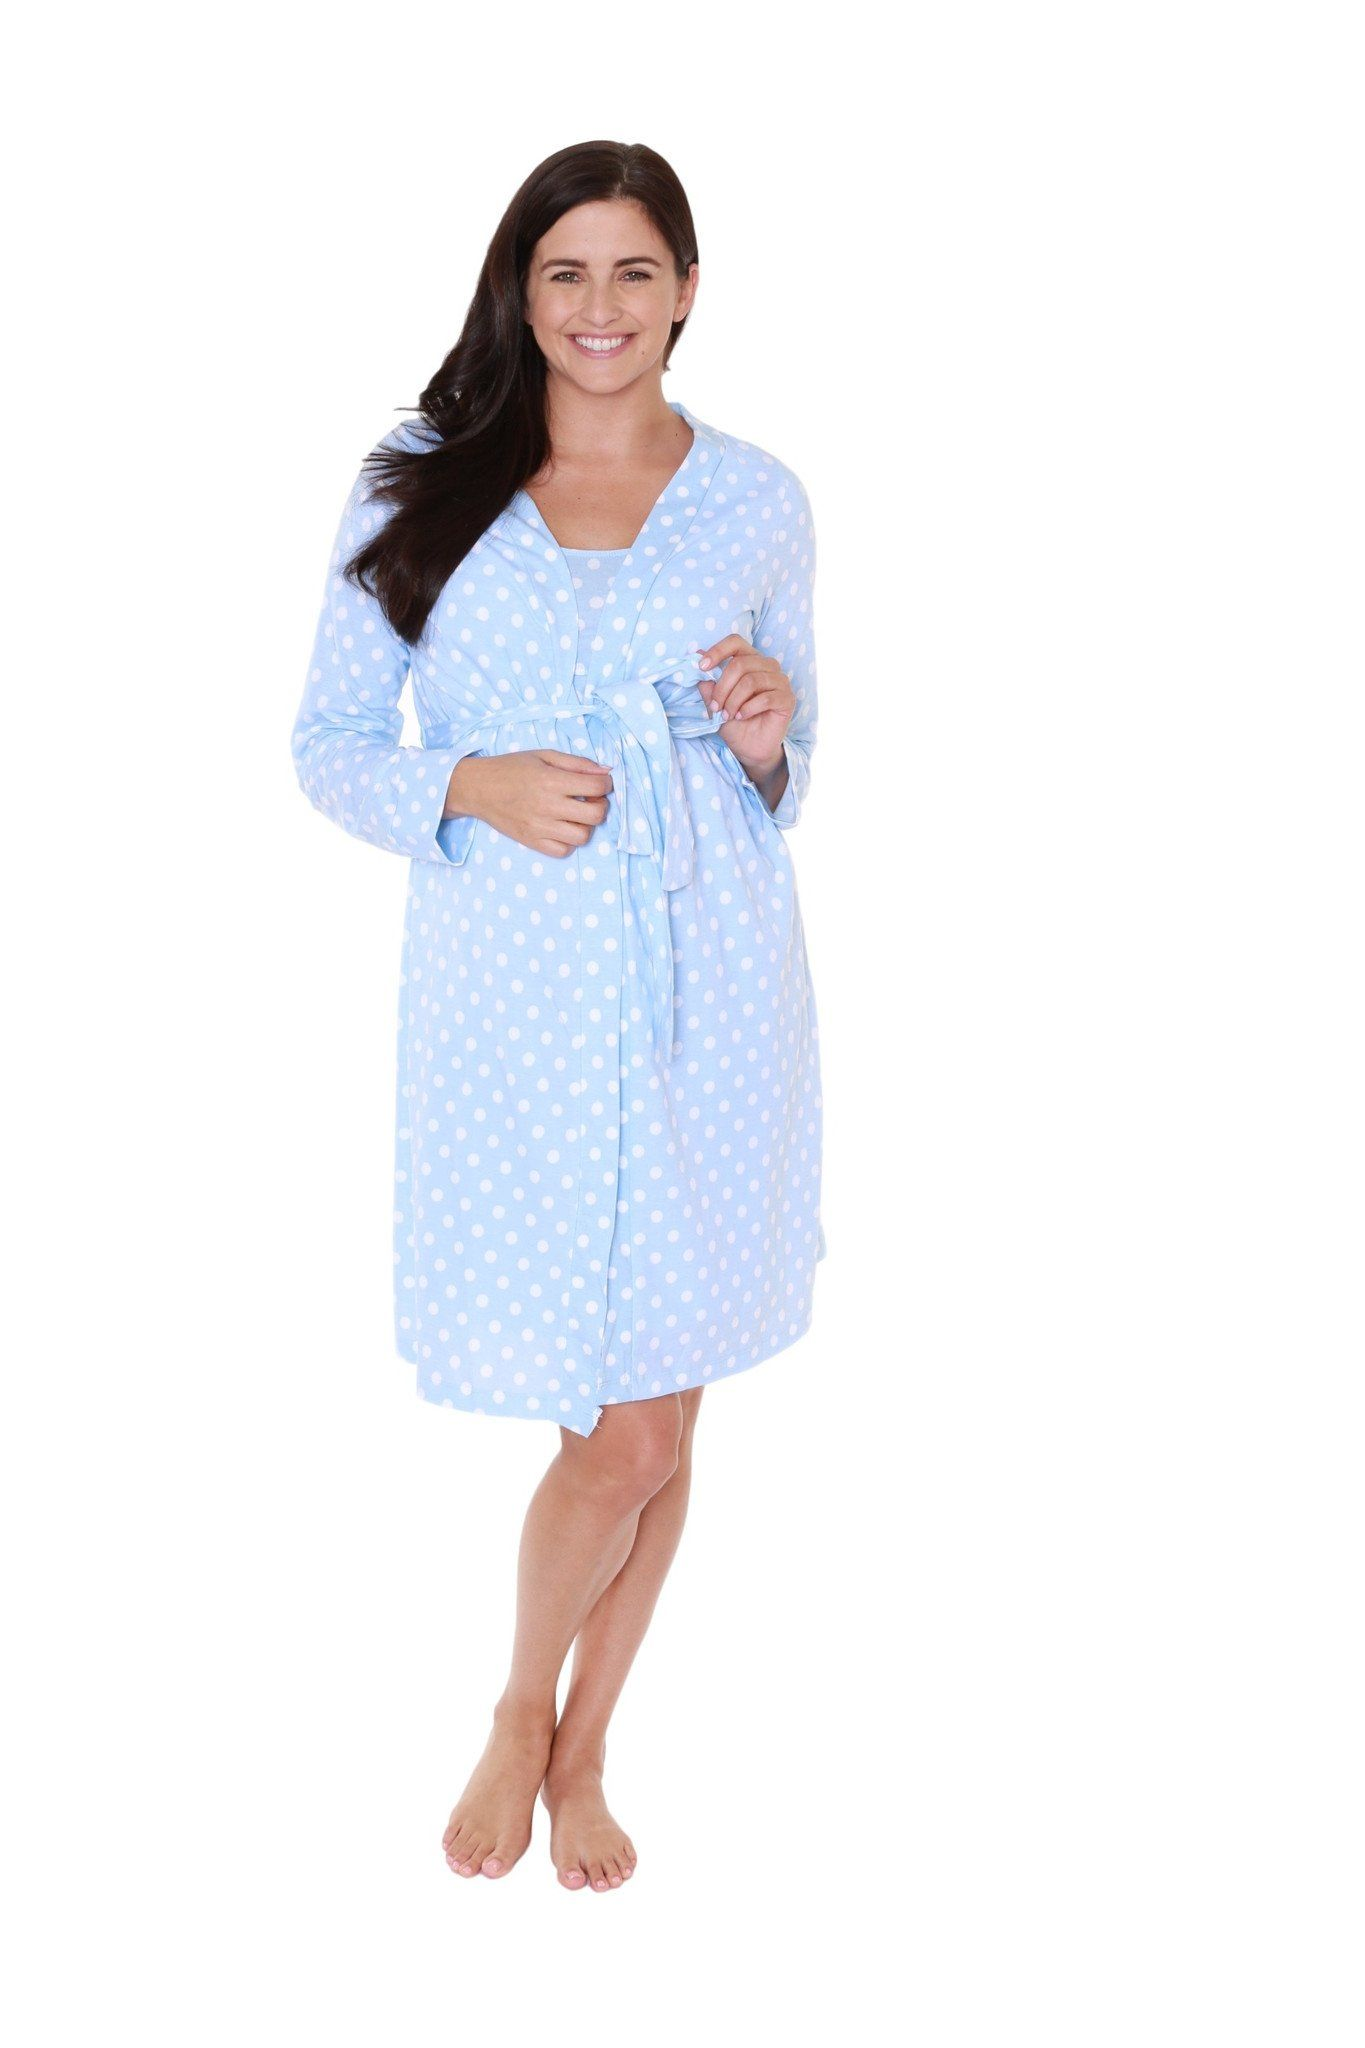 fba93231832ec This fabulous robe with attached belt adjusts easily from baby bump to new  mom. Whether you are home or walking the hospital ward, cover yourself in  style ...